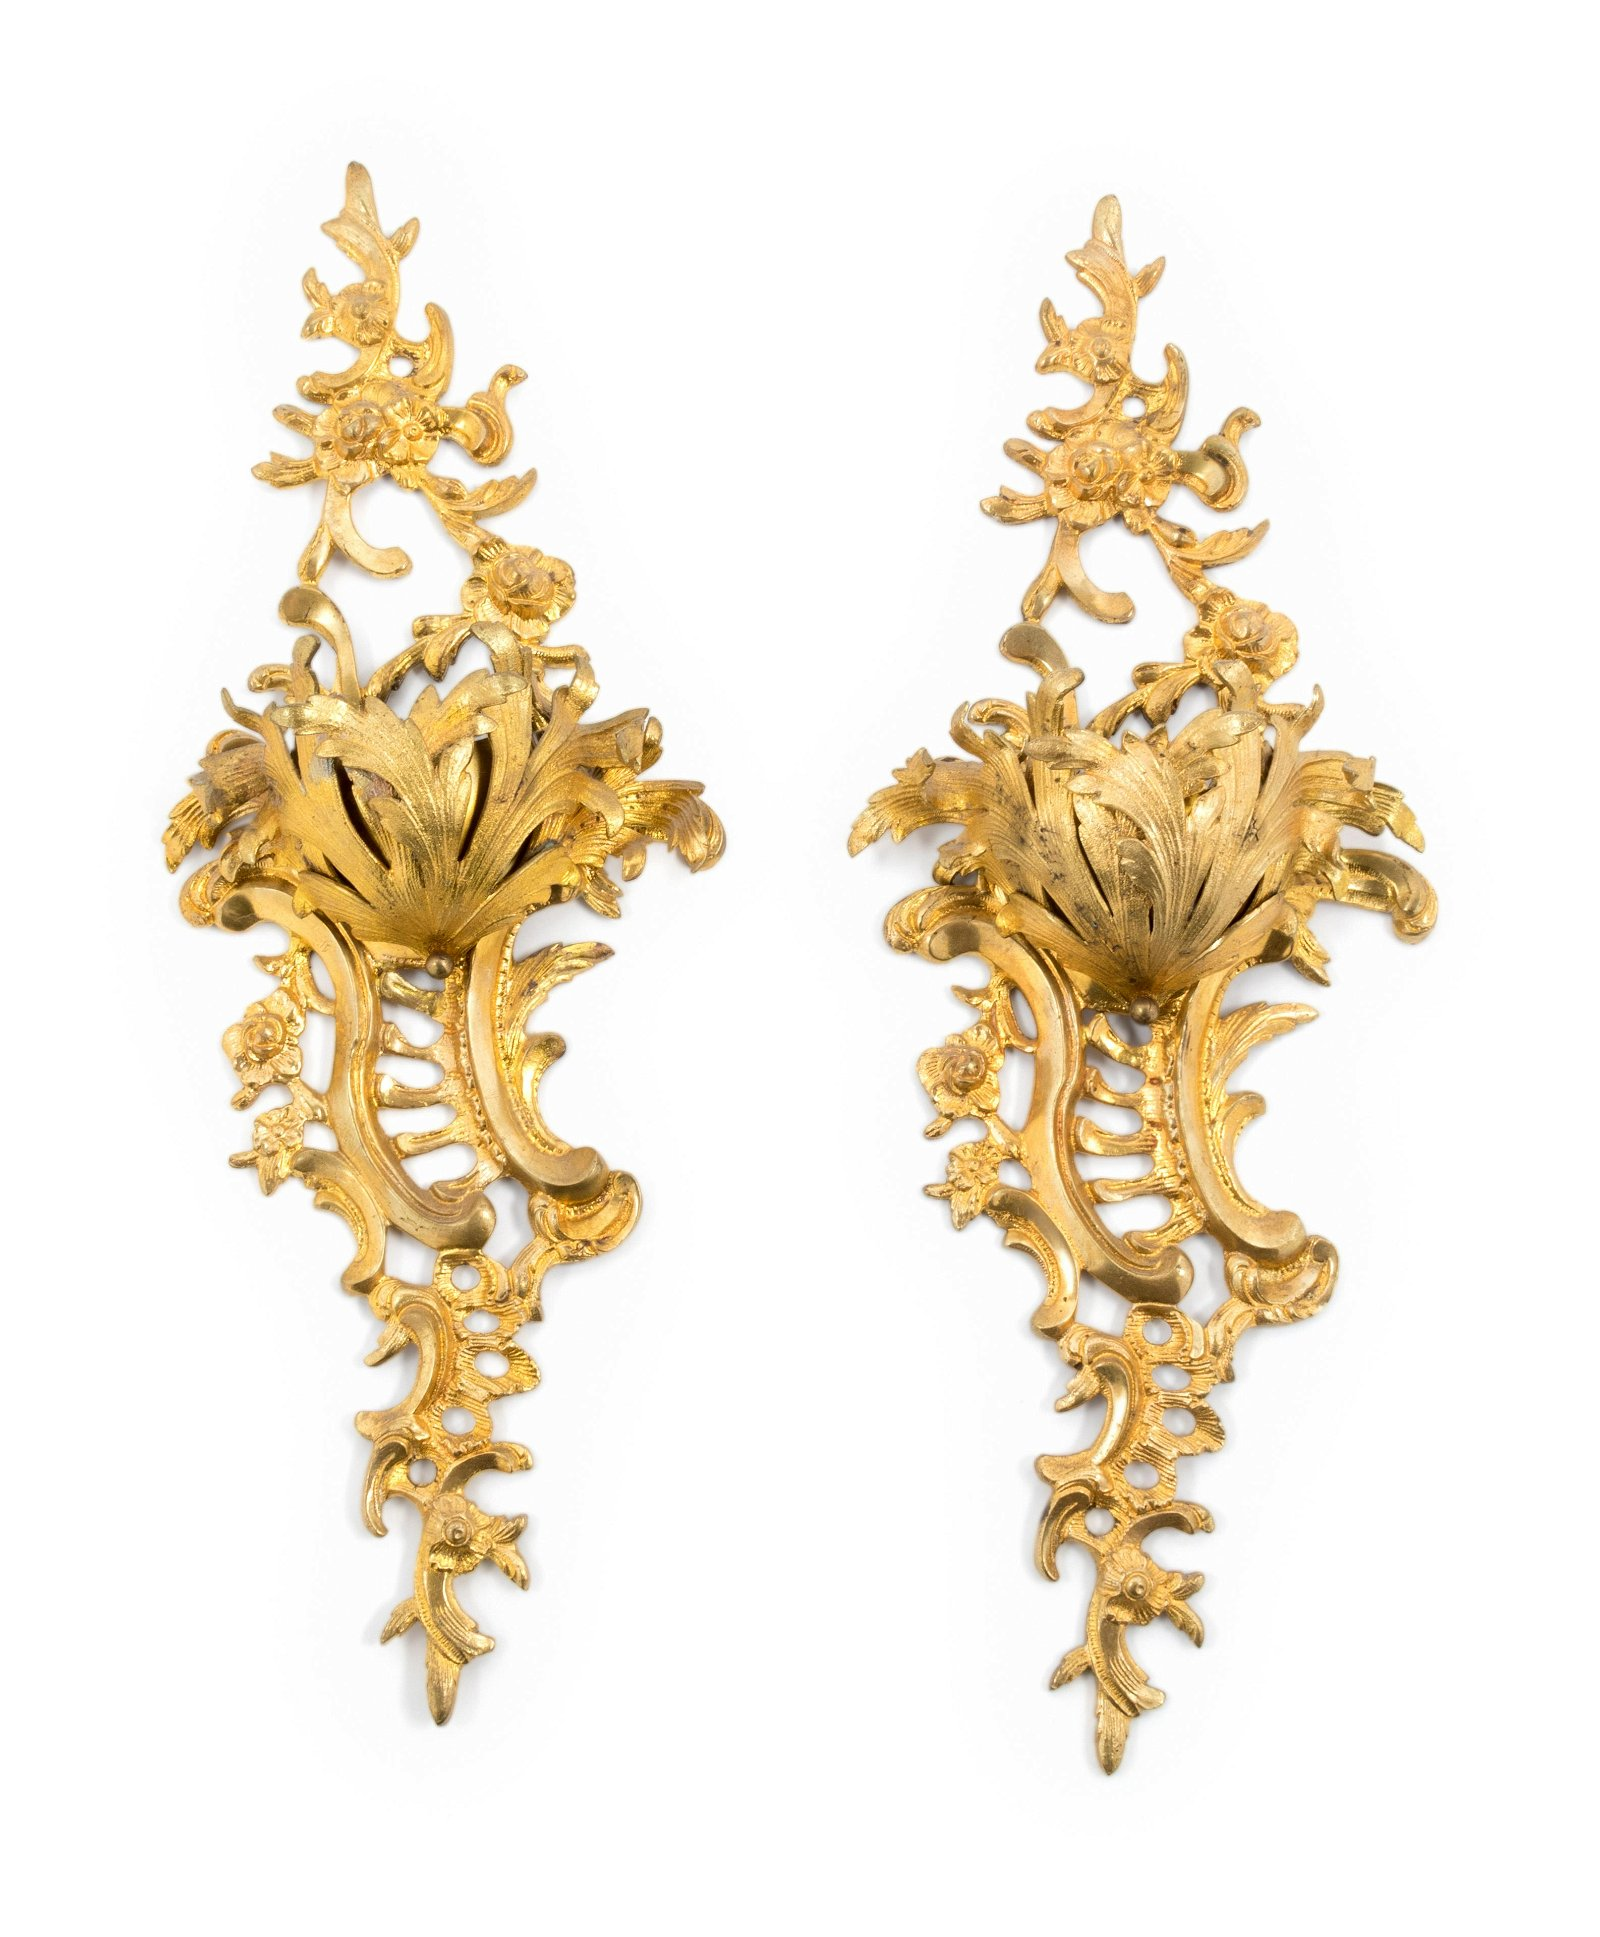 A Pair of Rococo Style Gilt Metal Wall Pockets